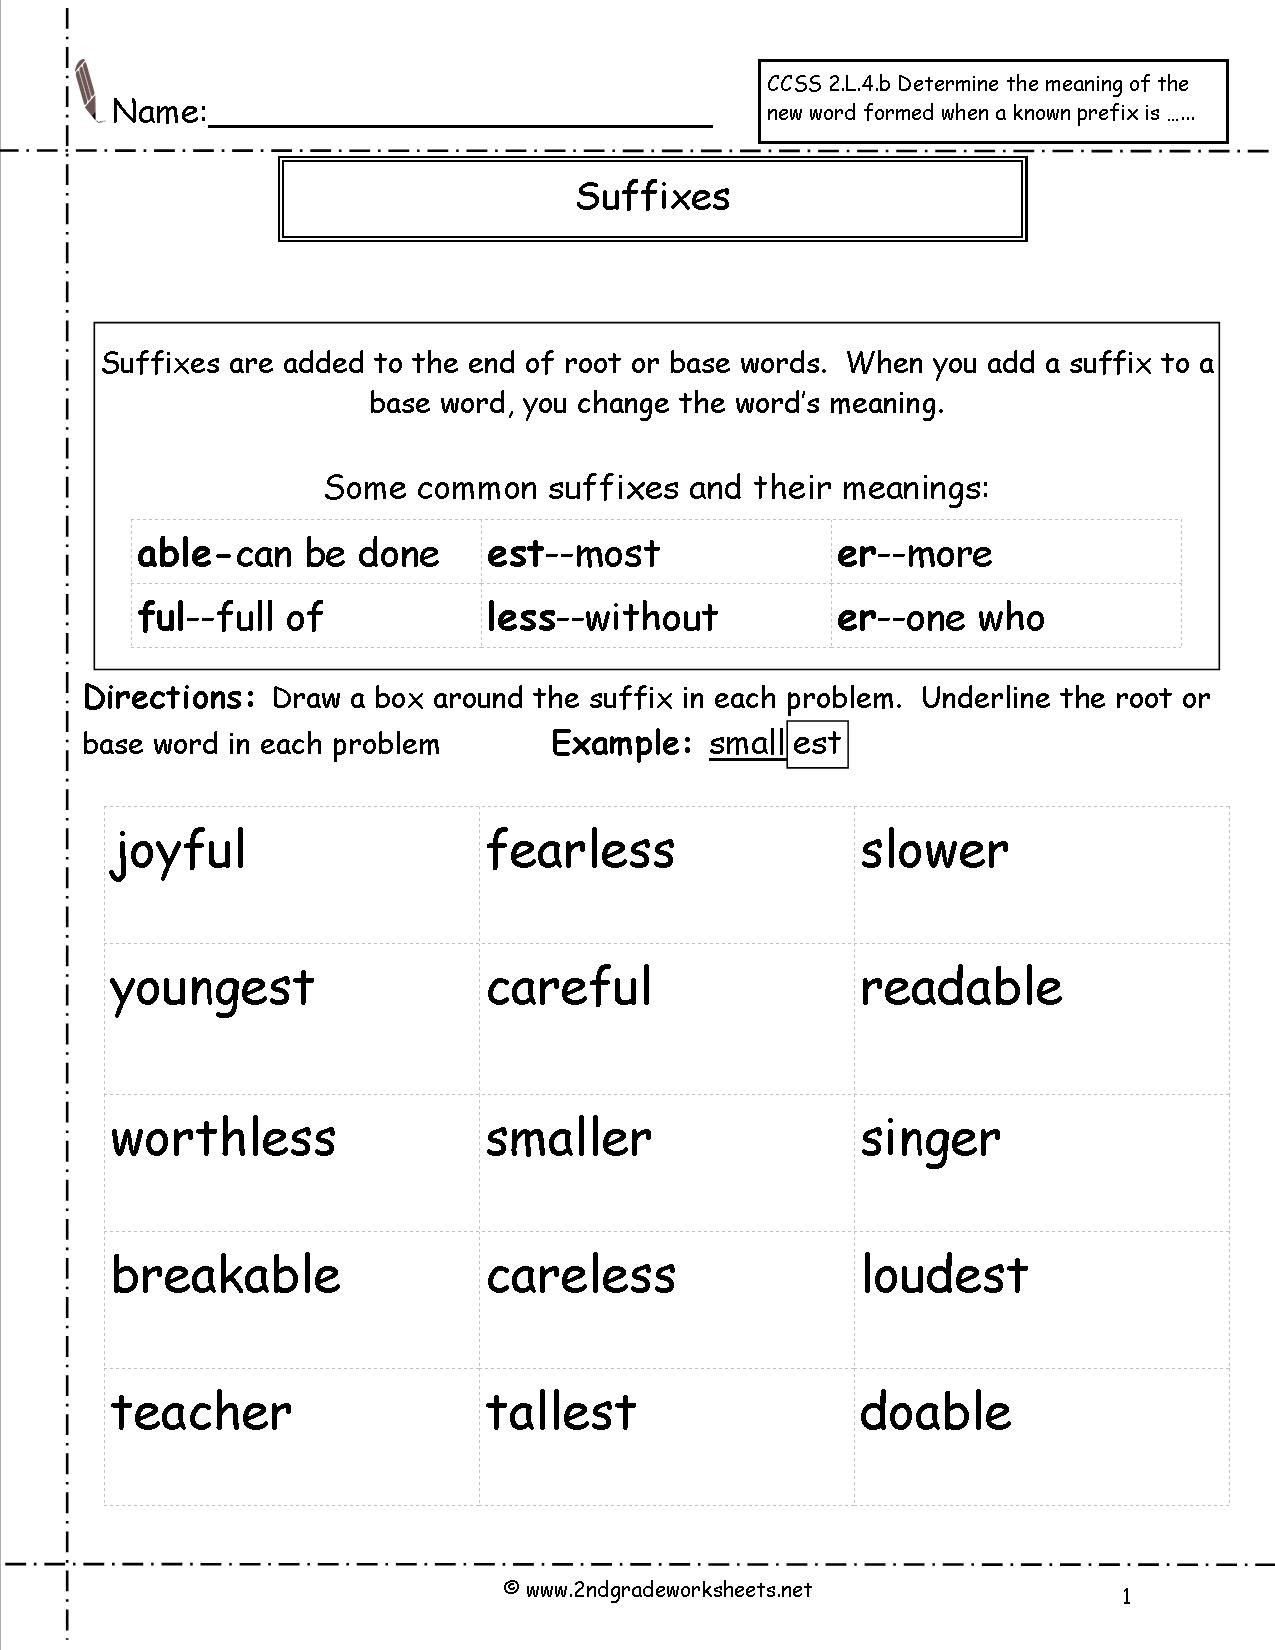 Suffixes Worksheet 3rd Grade 41 Innovative Prefix Worksheets for You